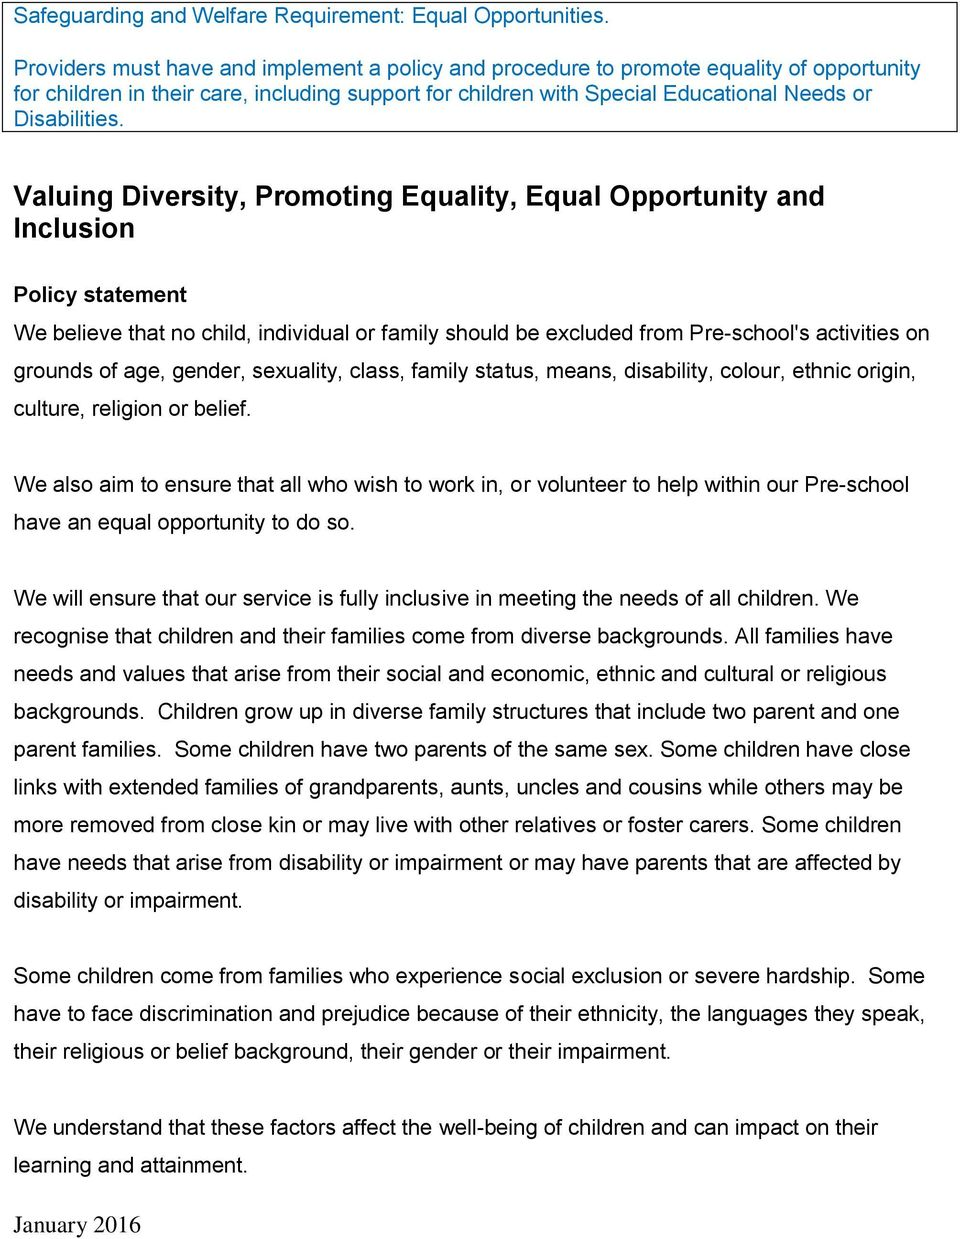 Valuing Diversity, Promoting Equality, Equal Opportunity and Inclusion Policy statement We believe that no child, individual or family should be excluded from Pre-school's activities on grounds of